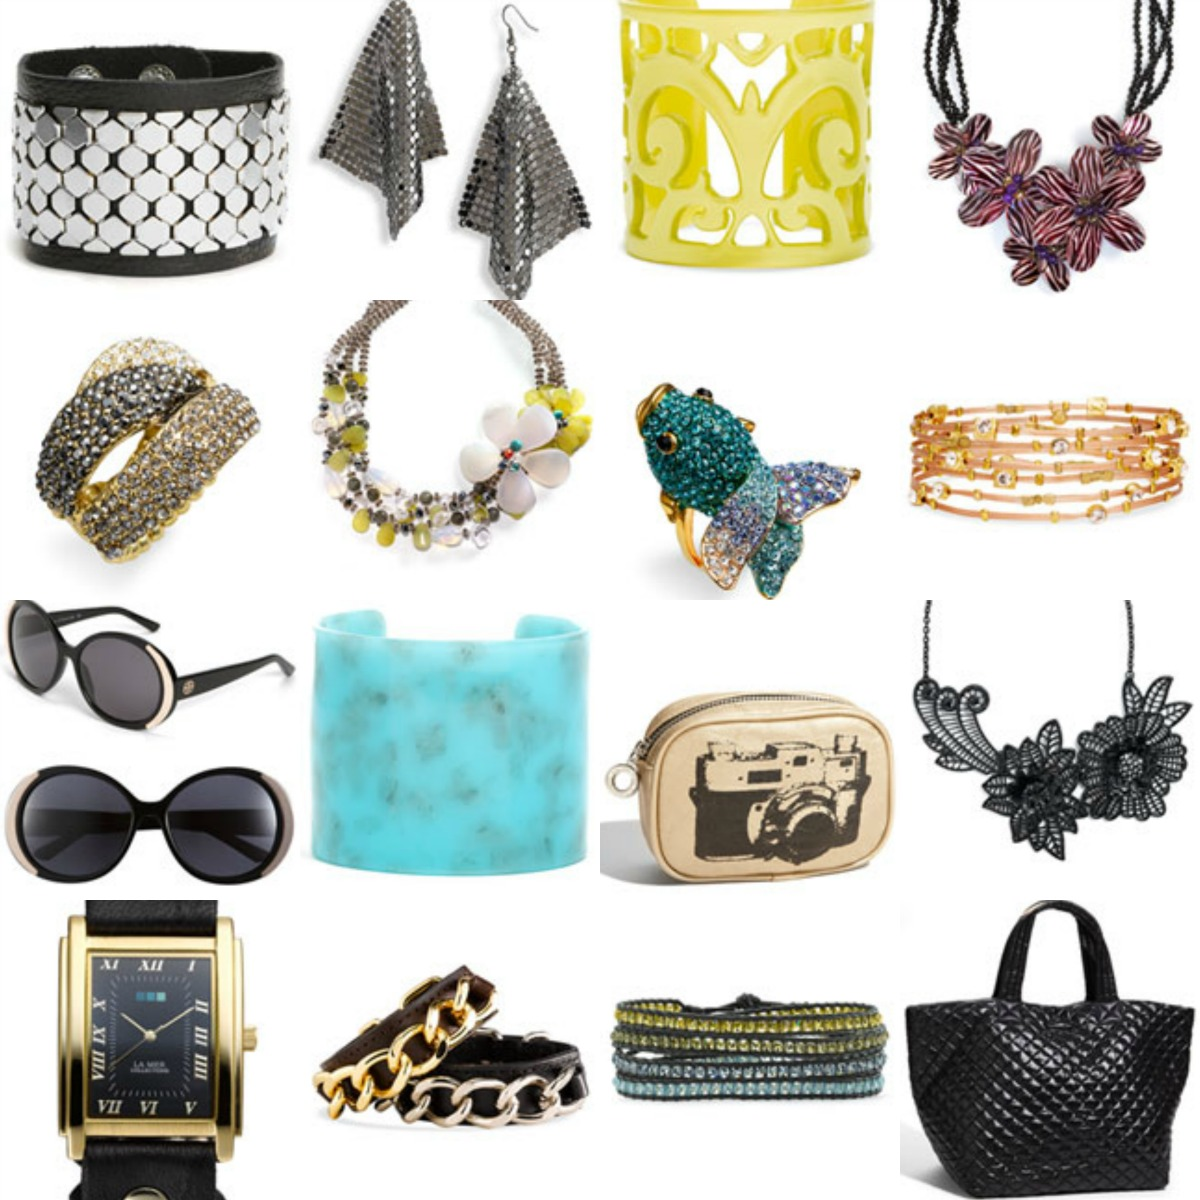 Orange Shine has one of the largest wholesale jewelry and womens fashion accessories selection online! You'll find the best prices for hat and hair accessories, legwear, necklaces, rings, watches, scarves, cosmetics, socks, cell phone accessories, brooches, earrings, body jewelry, sunglasses, tattoos, anklets, and more.